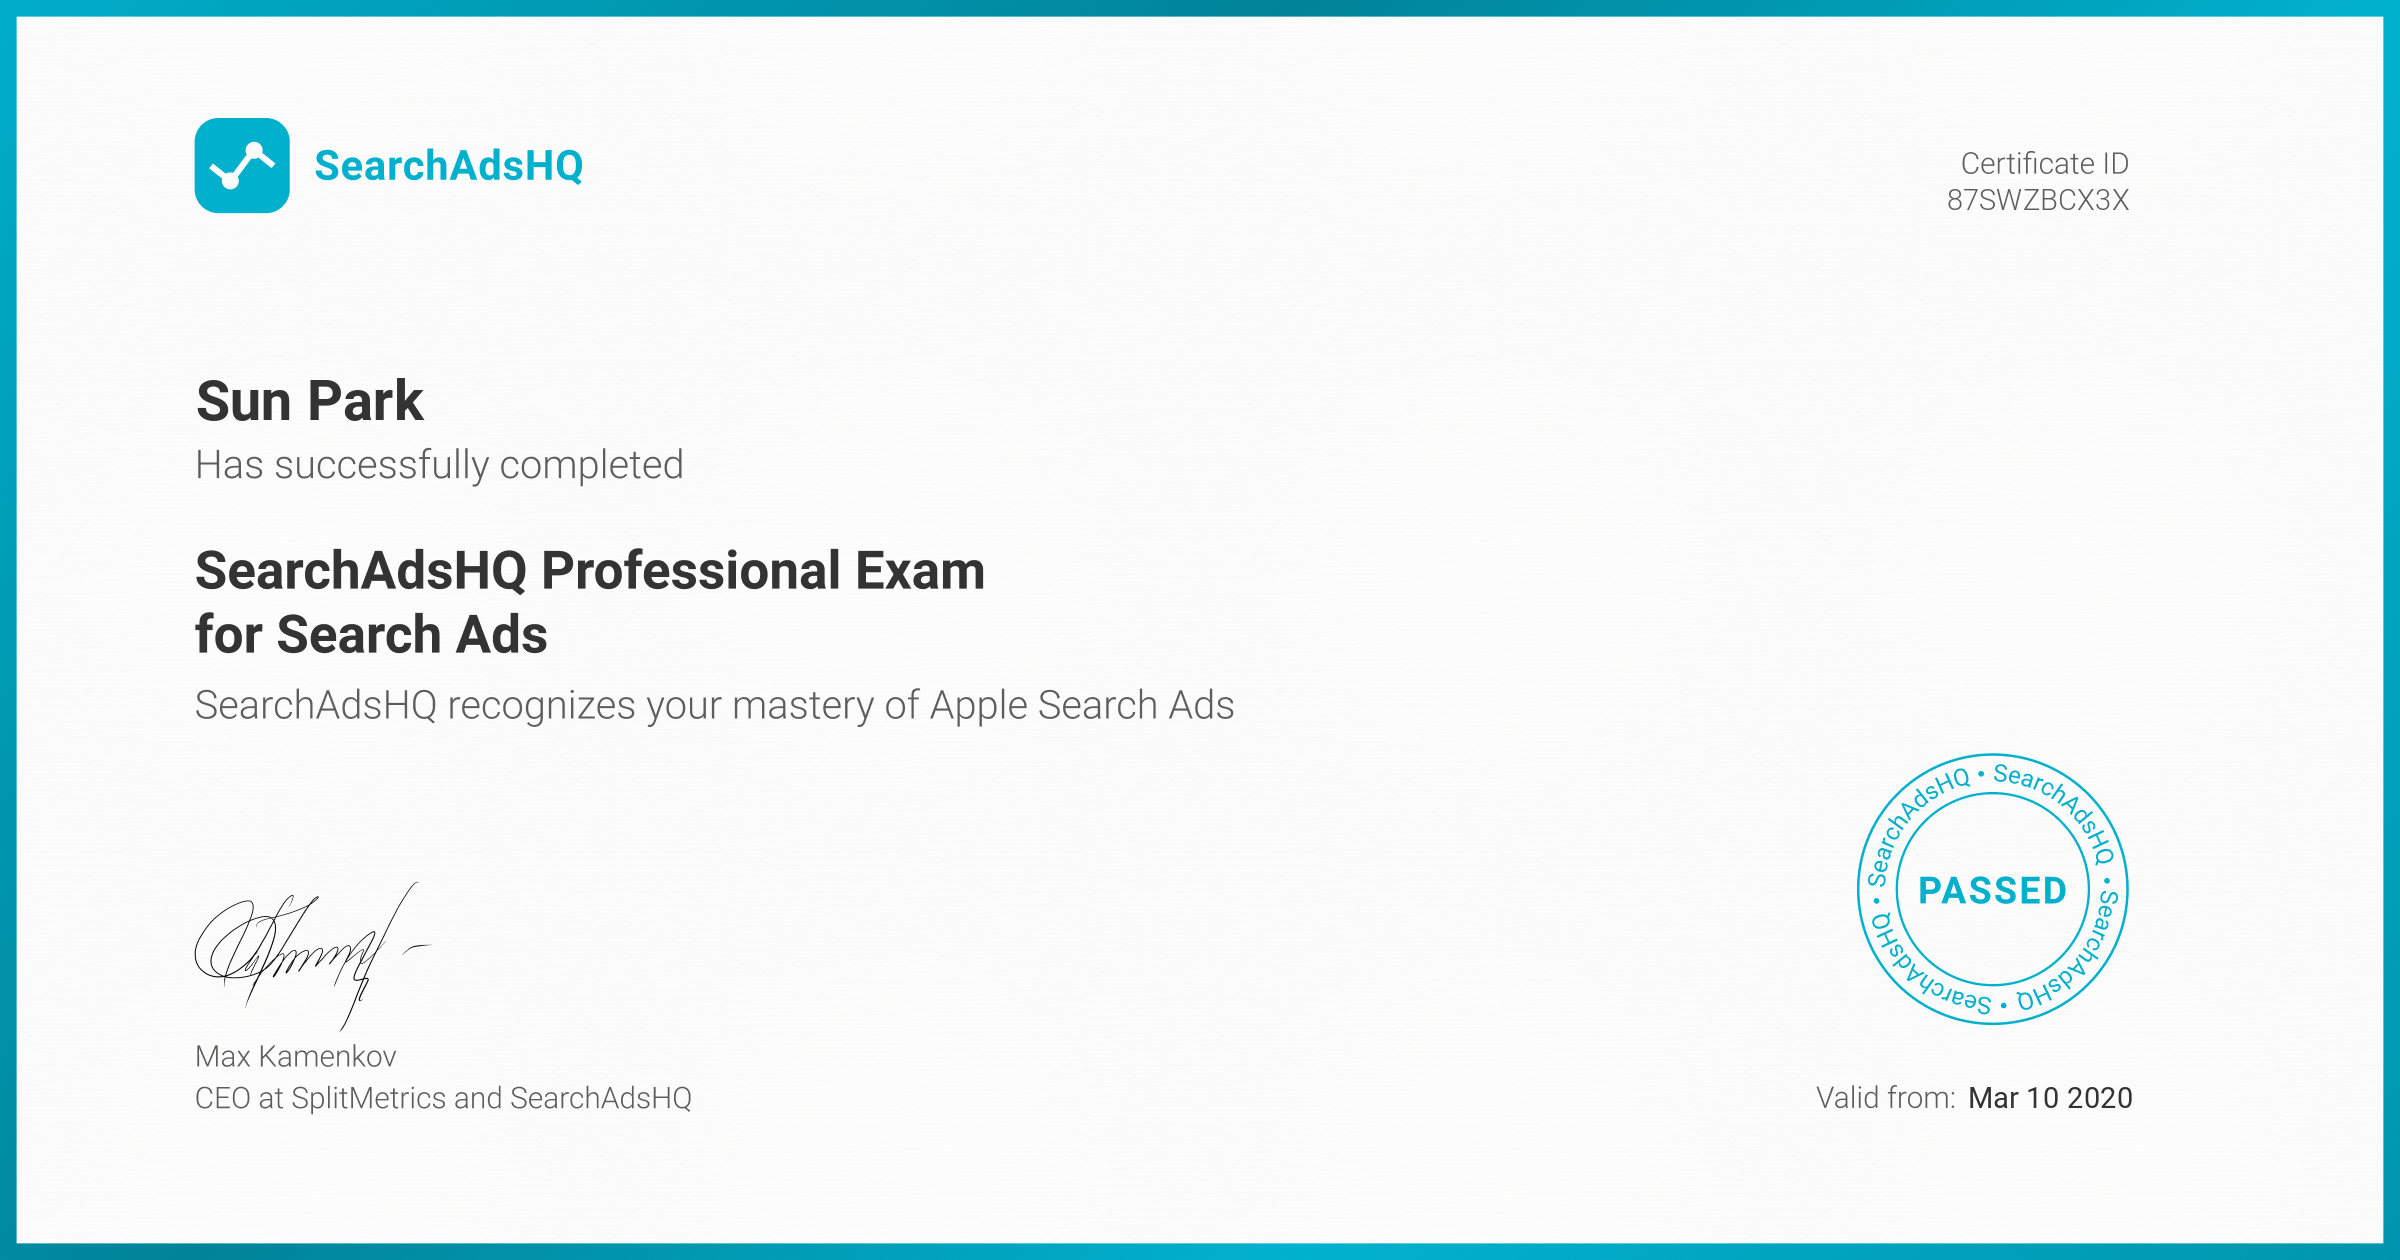 Certificate for Sun Park | SearchAdsHQ Professional Exam for Search Ads